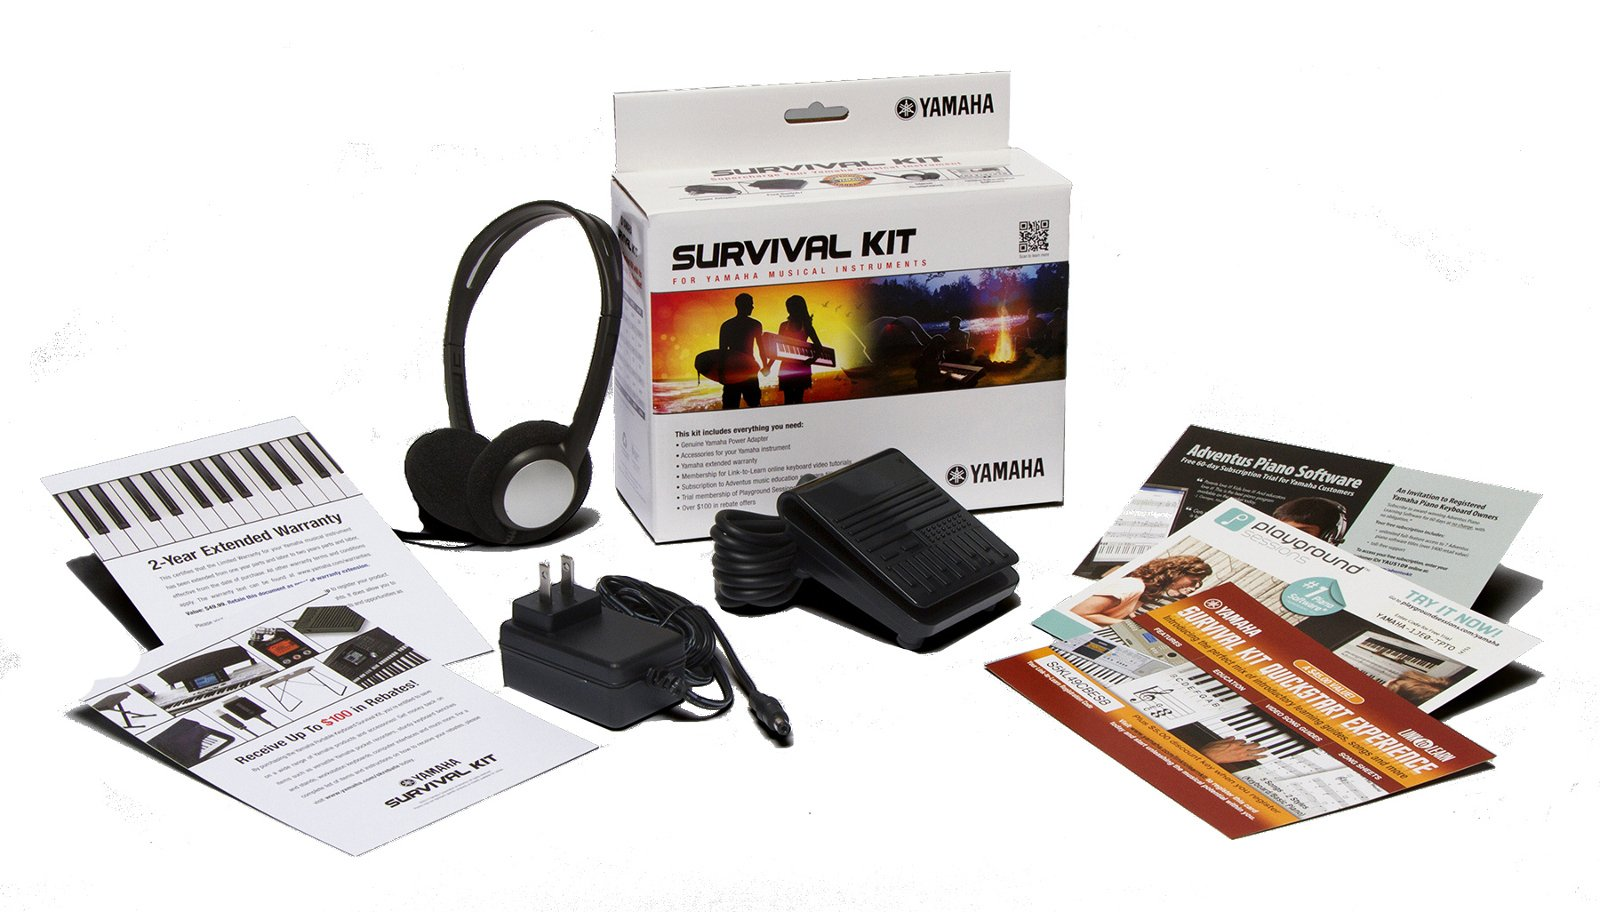 61-key High-Level Portable Keyboard with Survival Kit D2